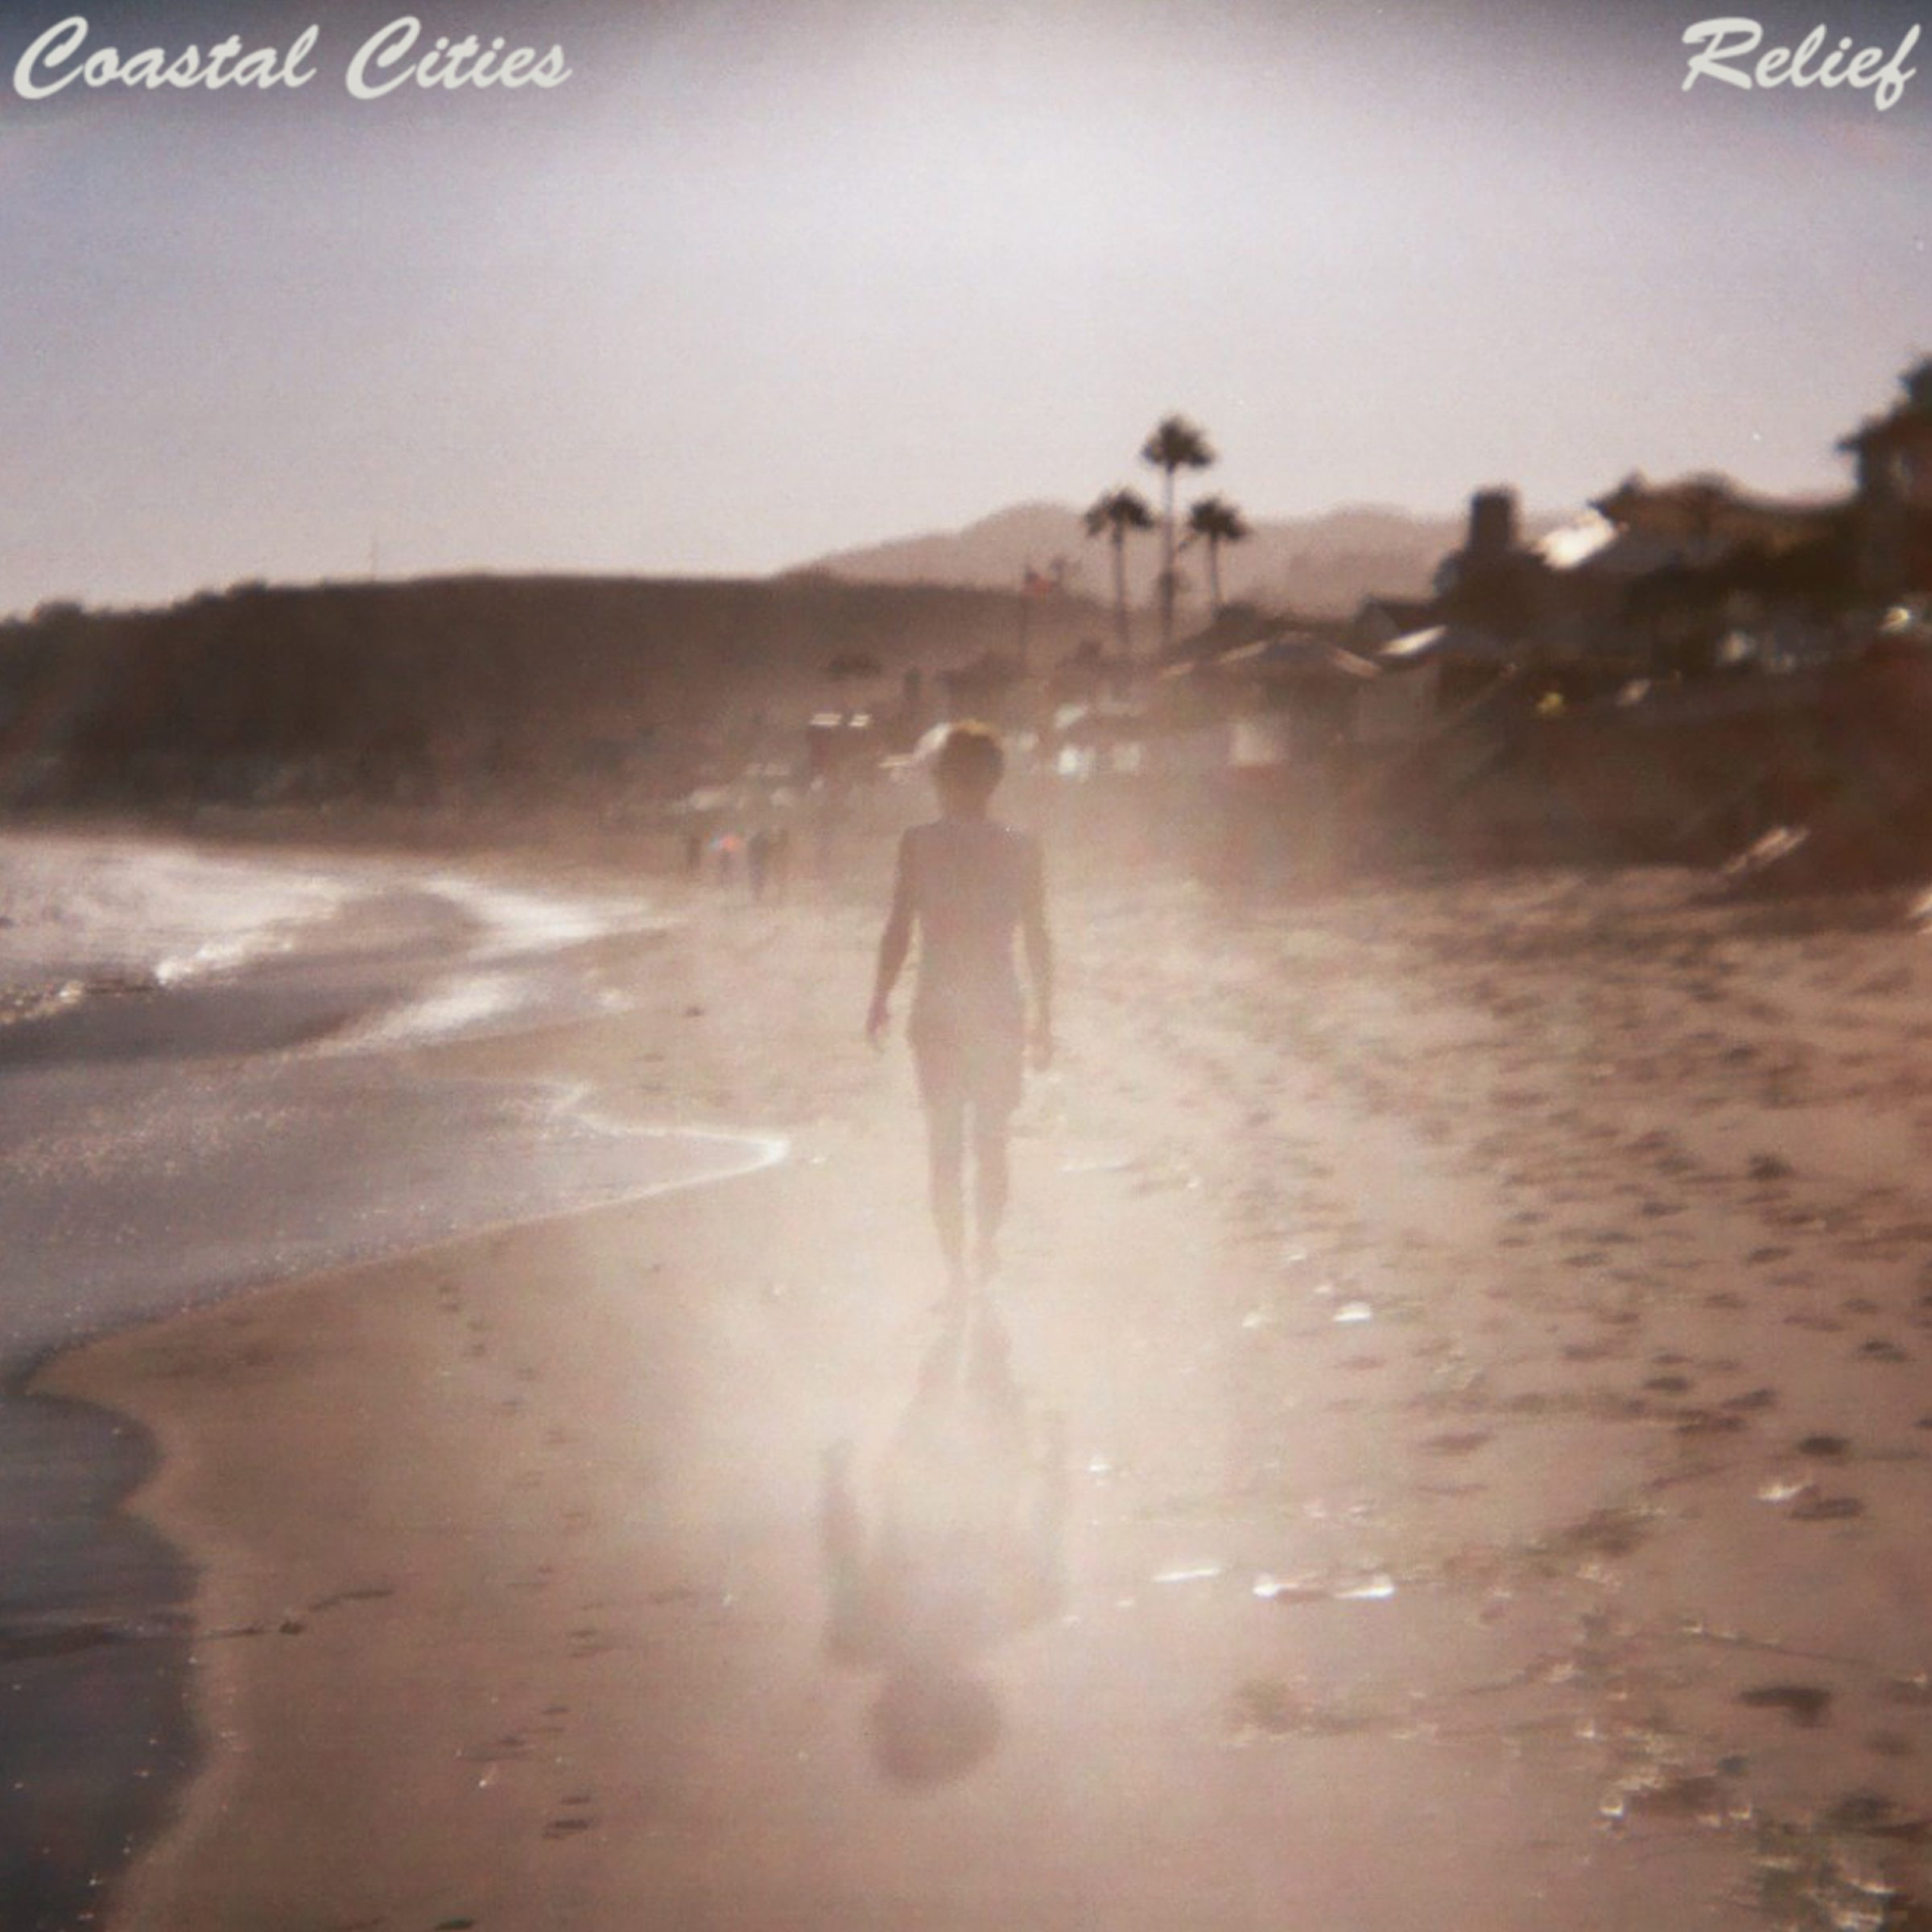 Coastal Cities is an up